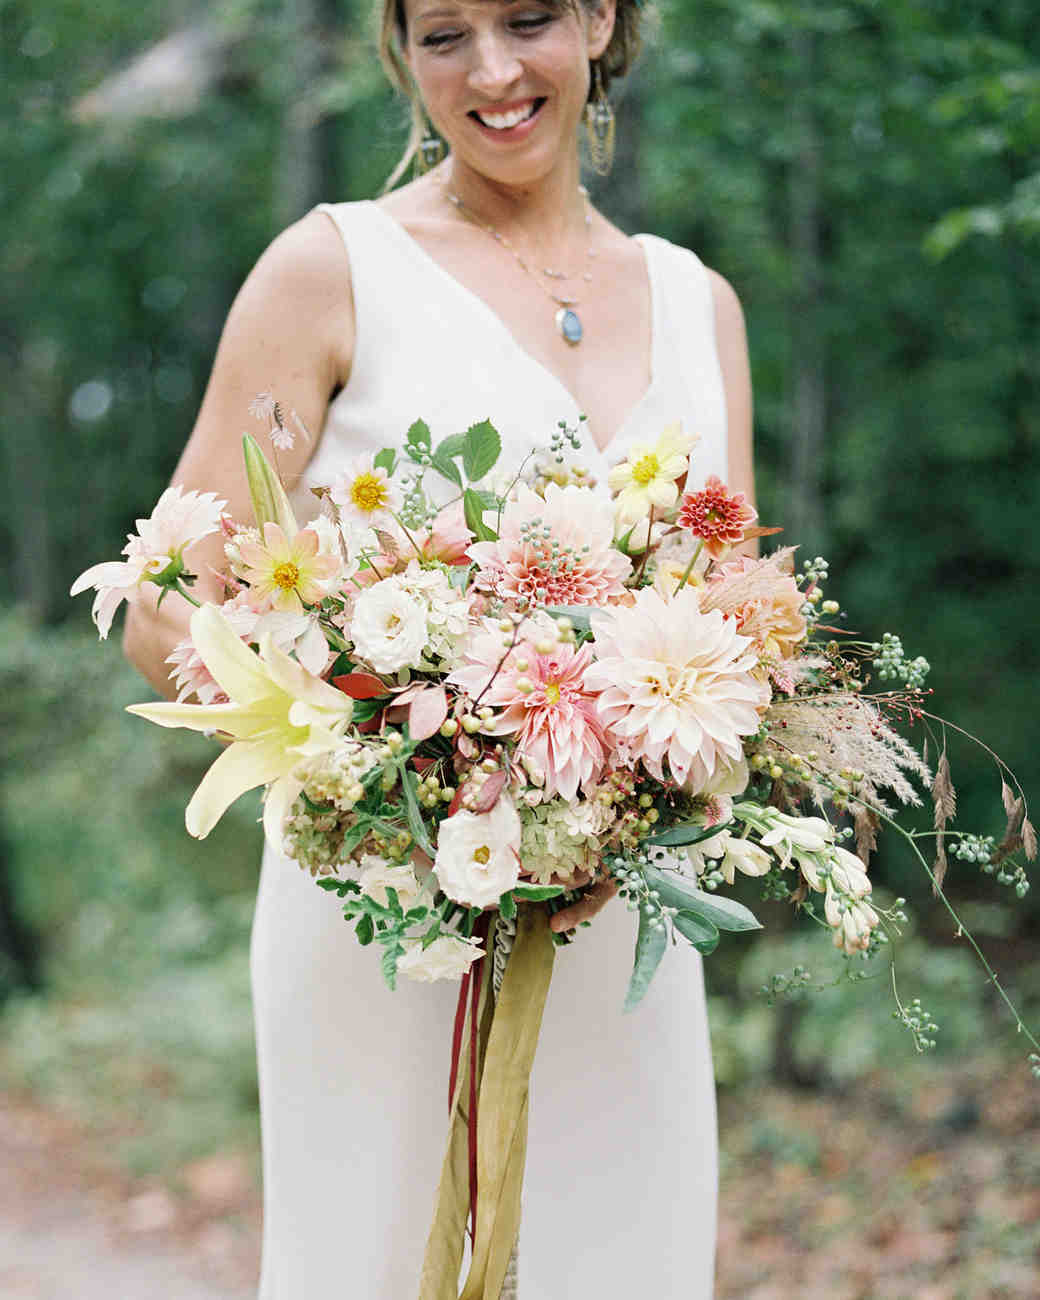 Rustic Bridal Bouquet with Foliage, Berries, and Peachy Flowers